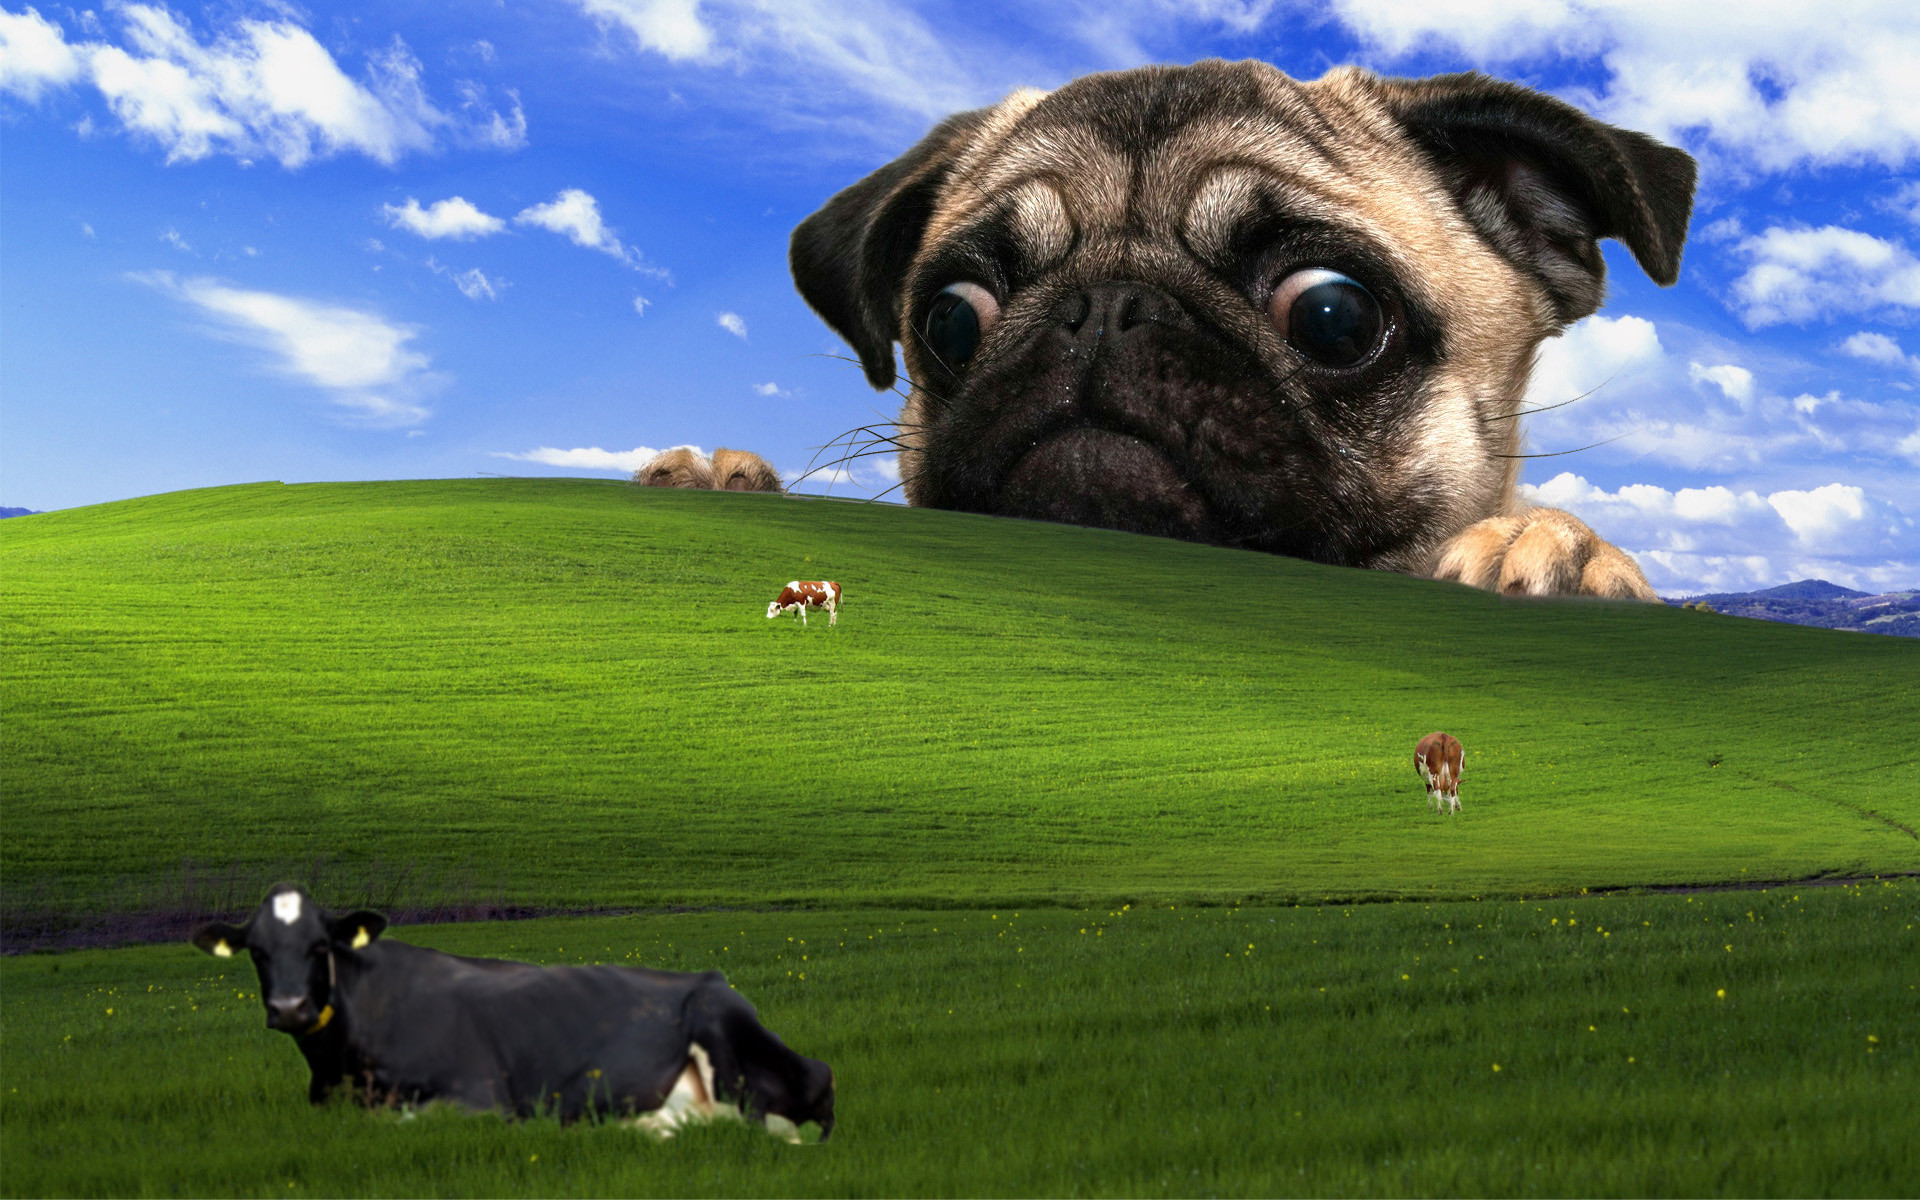 Cute Cartoon Hd Wallpapers Free Download Funny Pug Pictures Wallpaper 75 Images